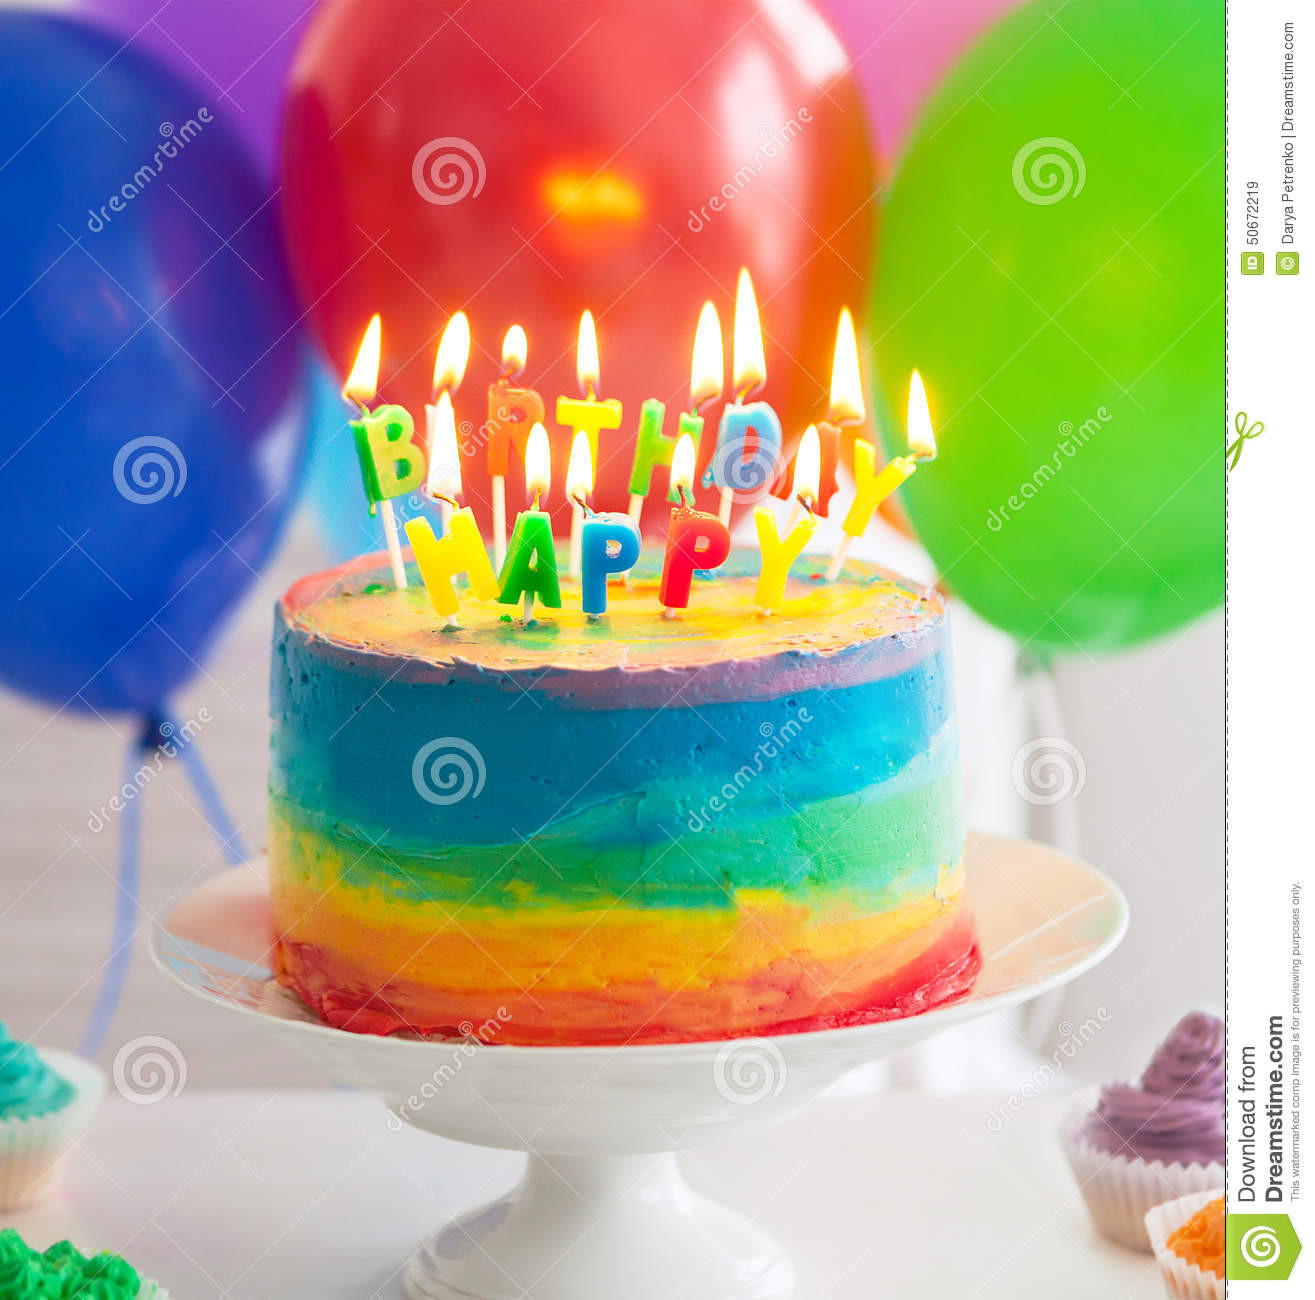 Birthday Cake With Candles And Balloons  Rainbow Cake And Cupcakes Decorated With Birthday Candles